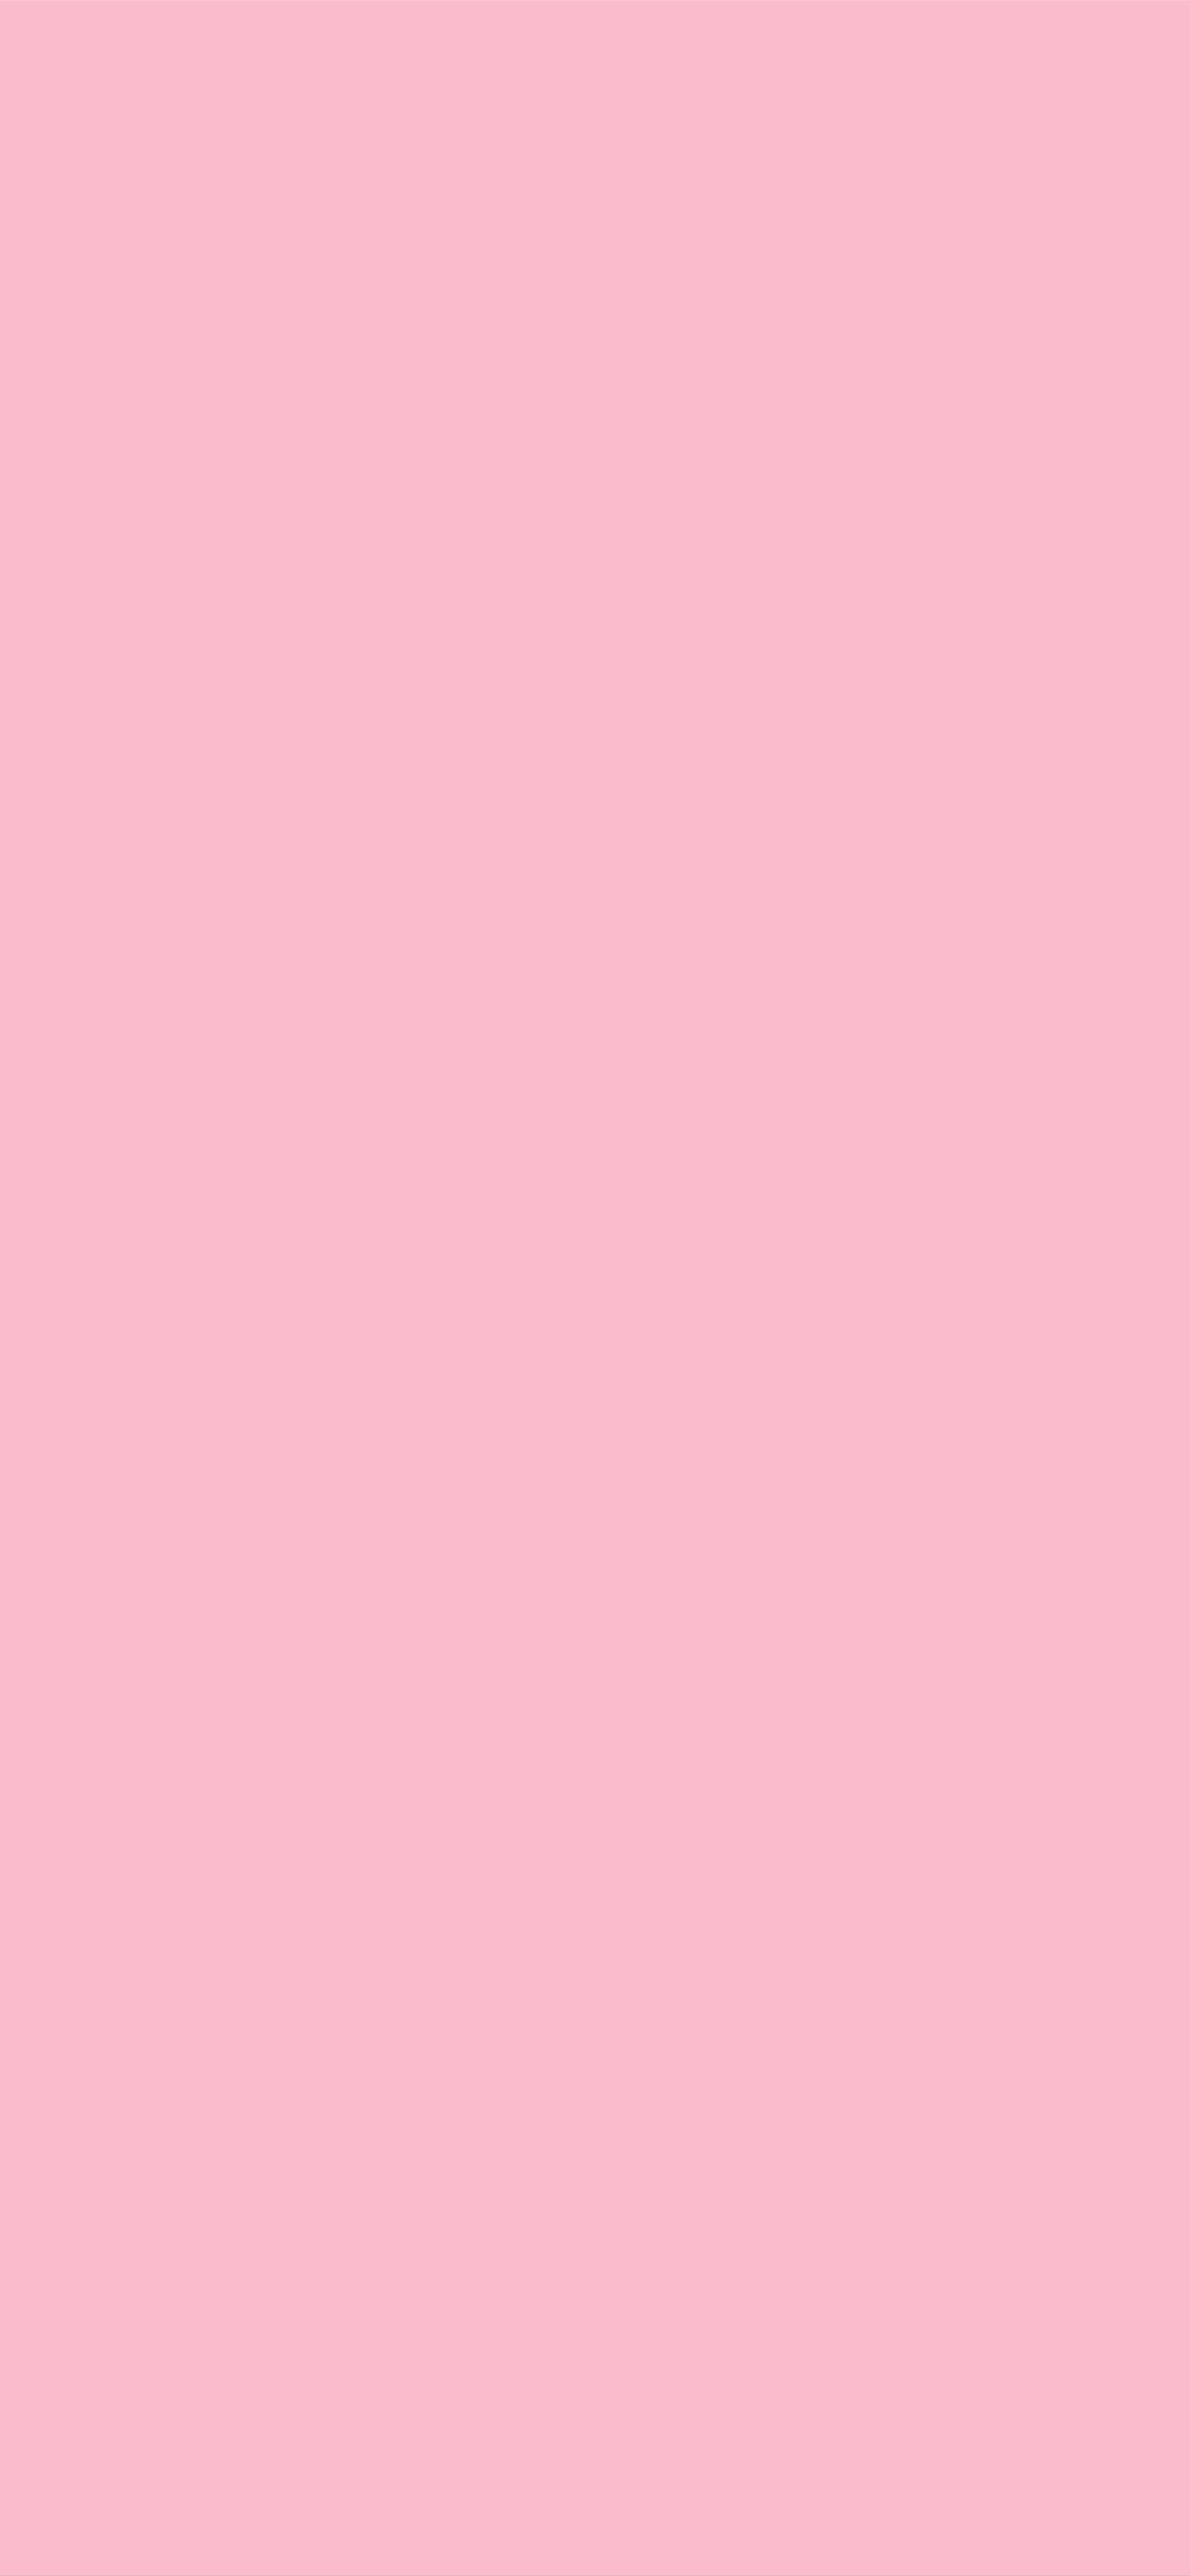 Wallpaper For Iphone X Pink